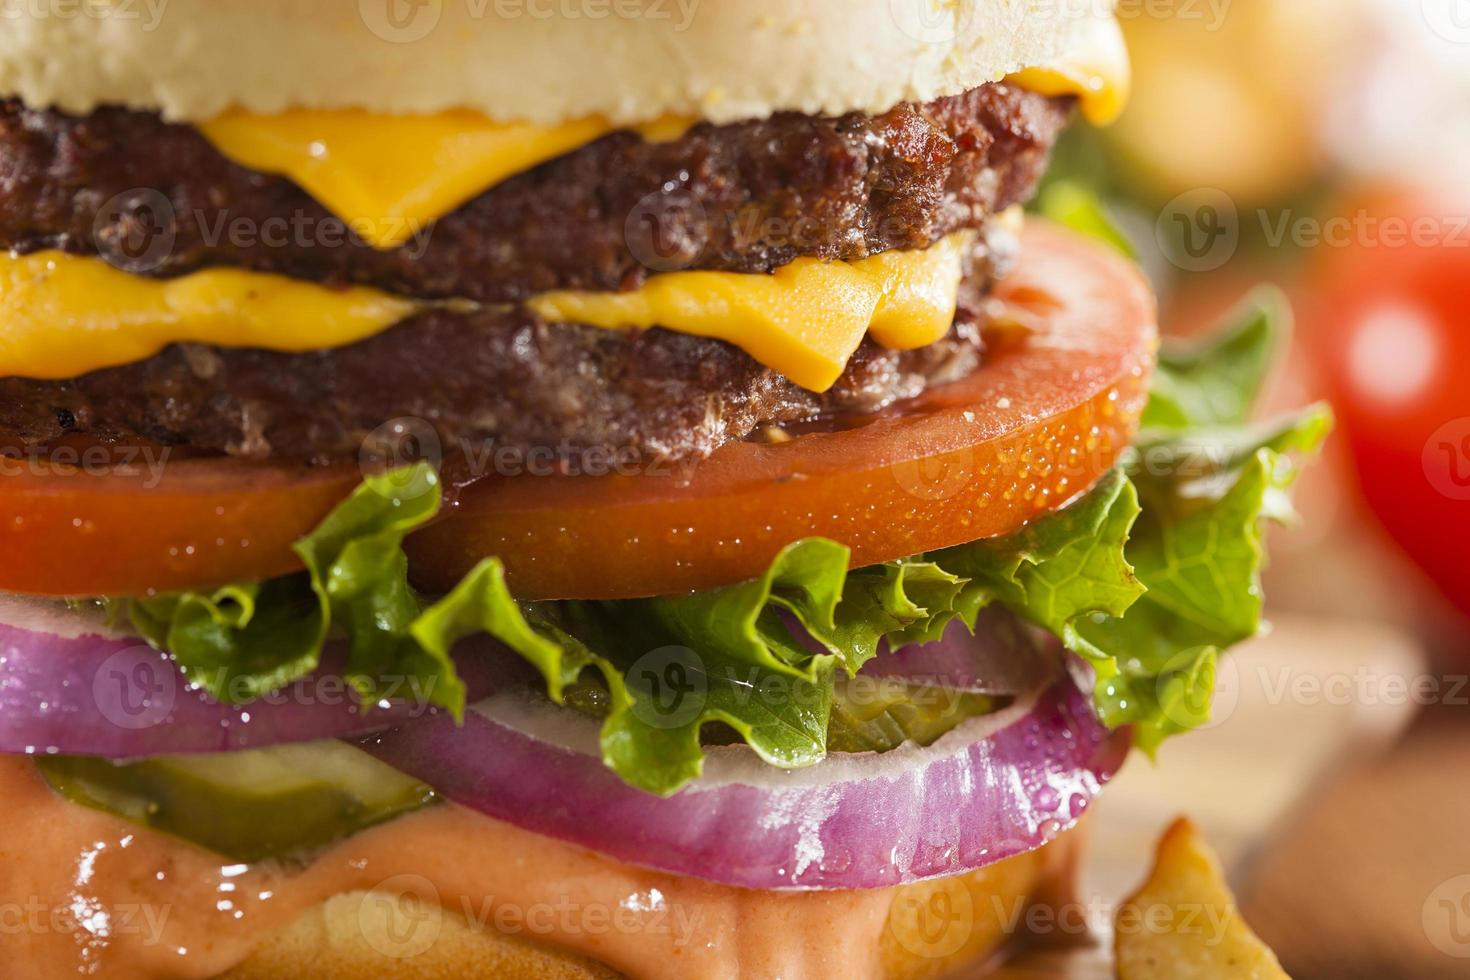 Beef Cheese Hamburger with Lettuce Tomato photo